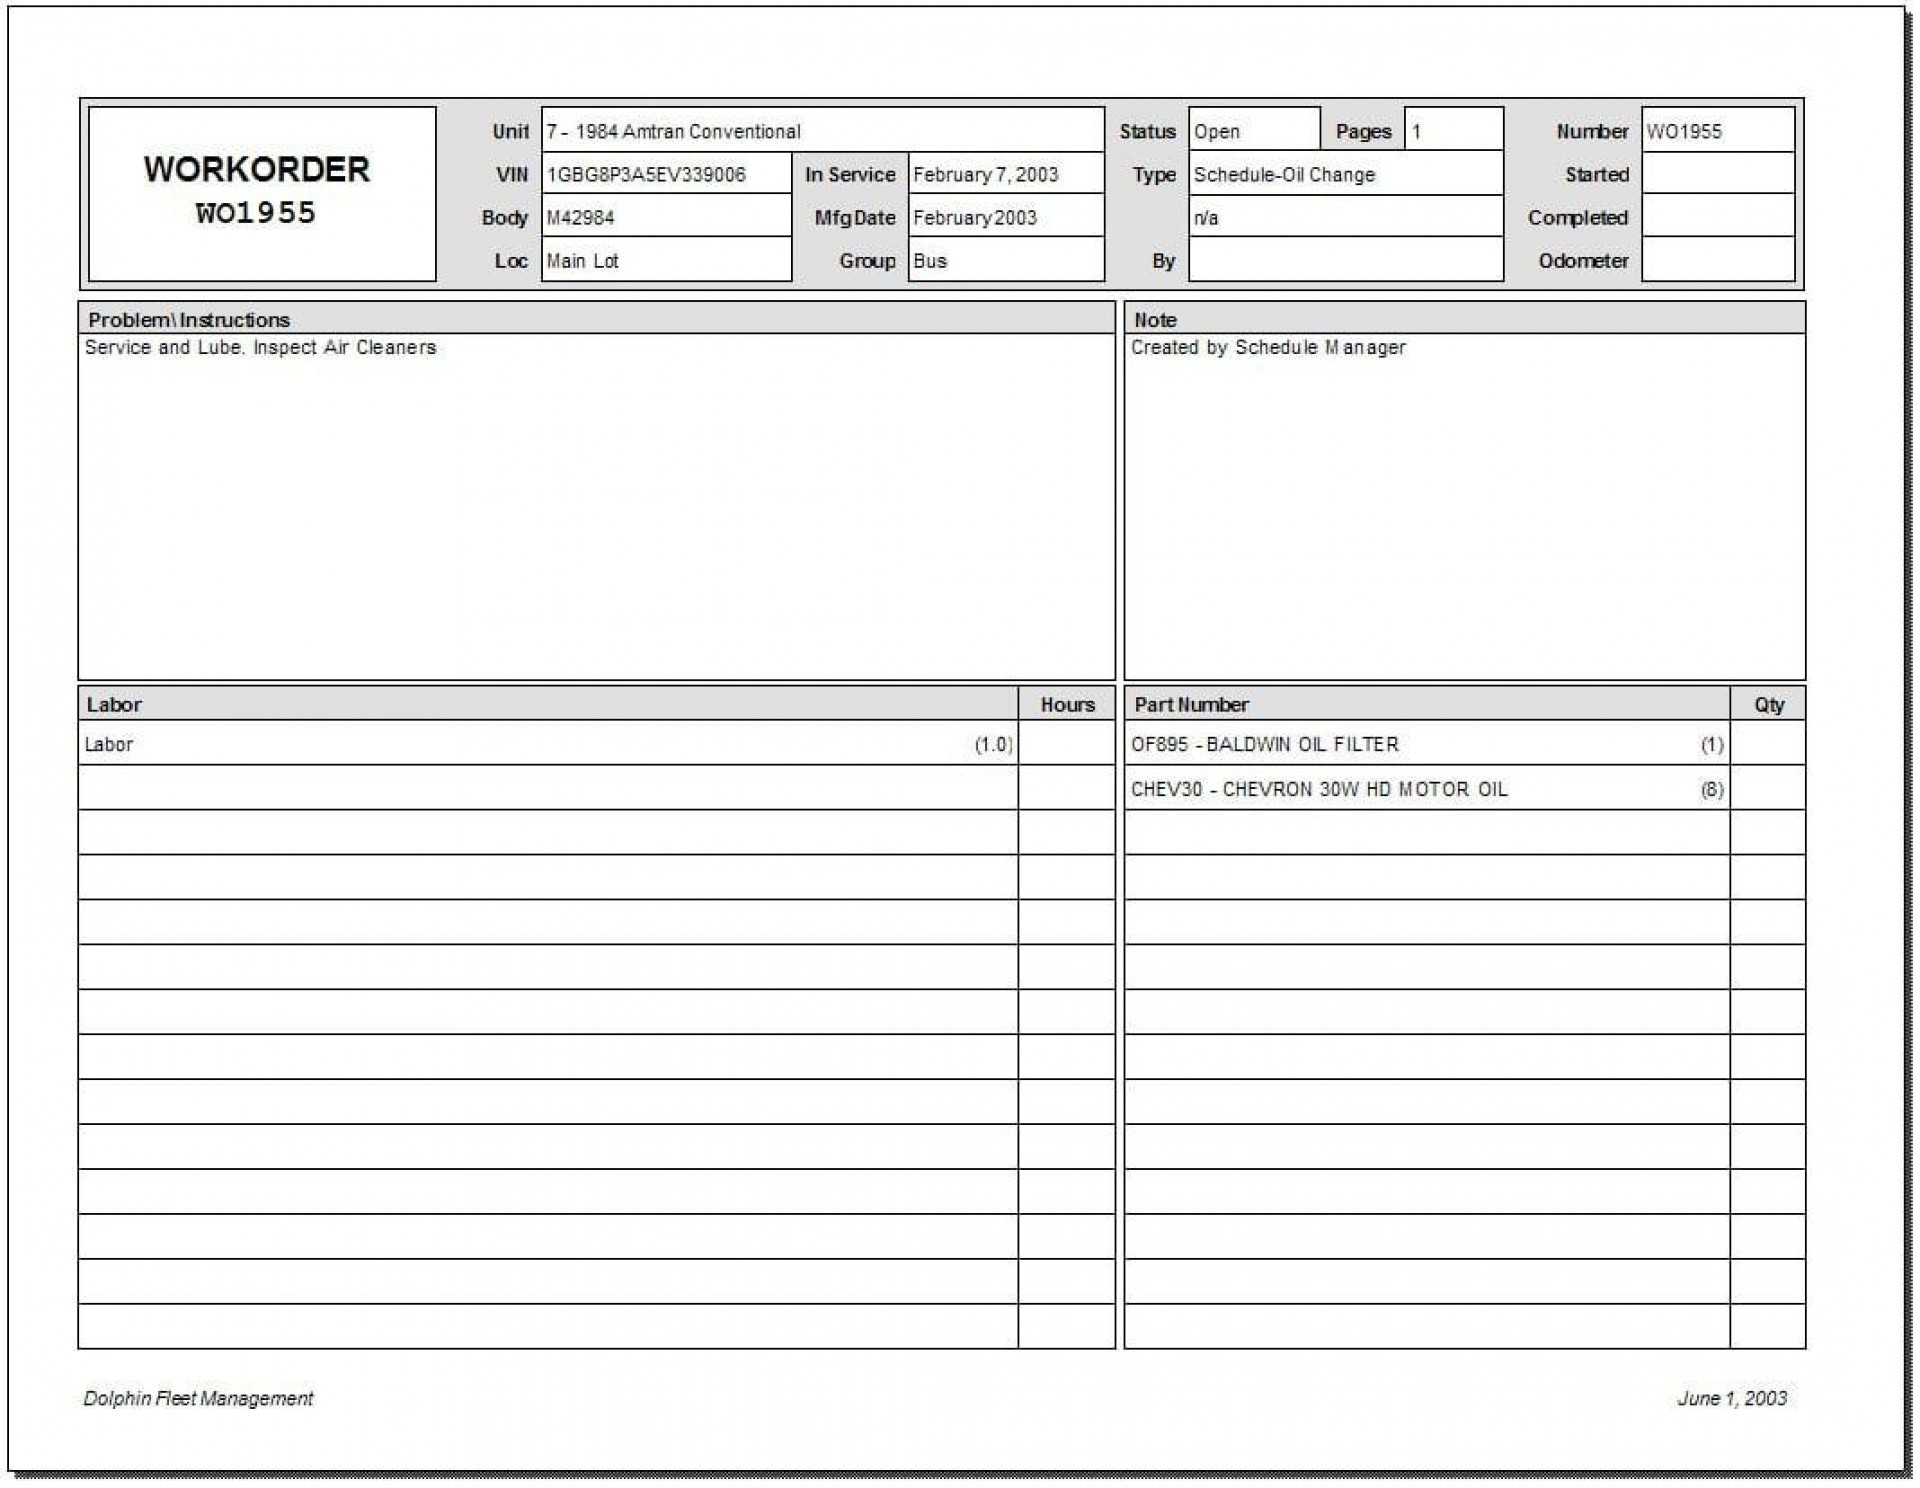 009 Staggering Excel Work Order Tracking Template High Resolution  Construction Microsoft1920